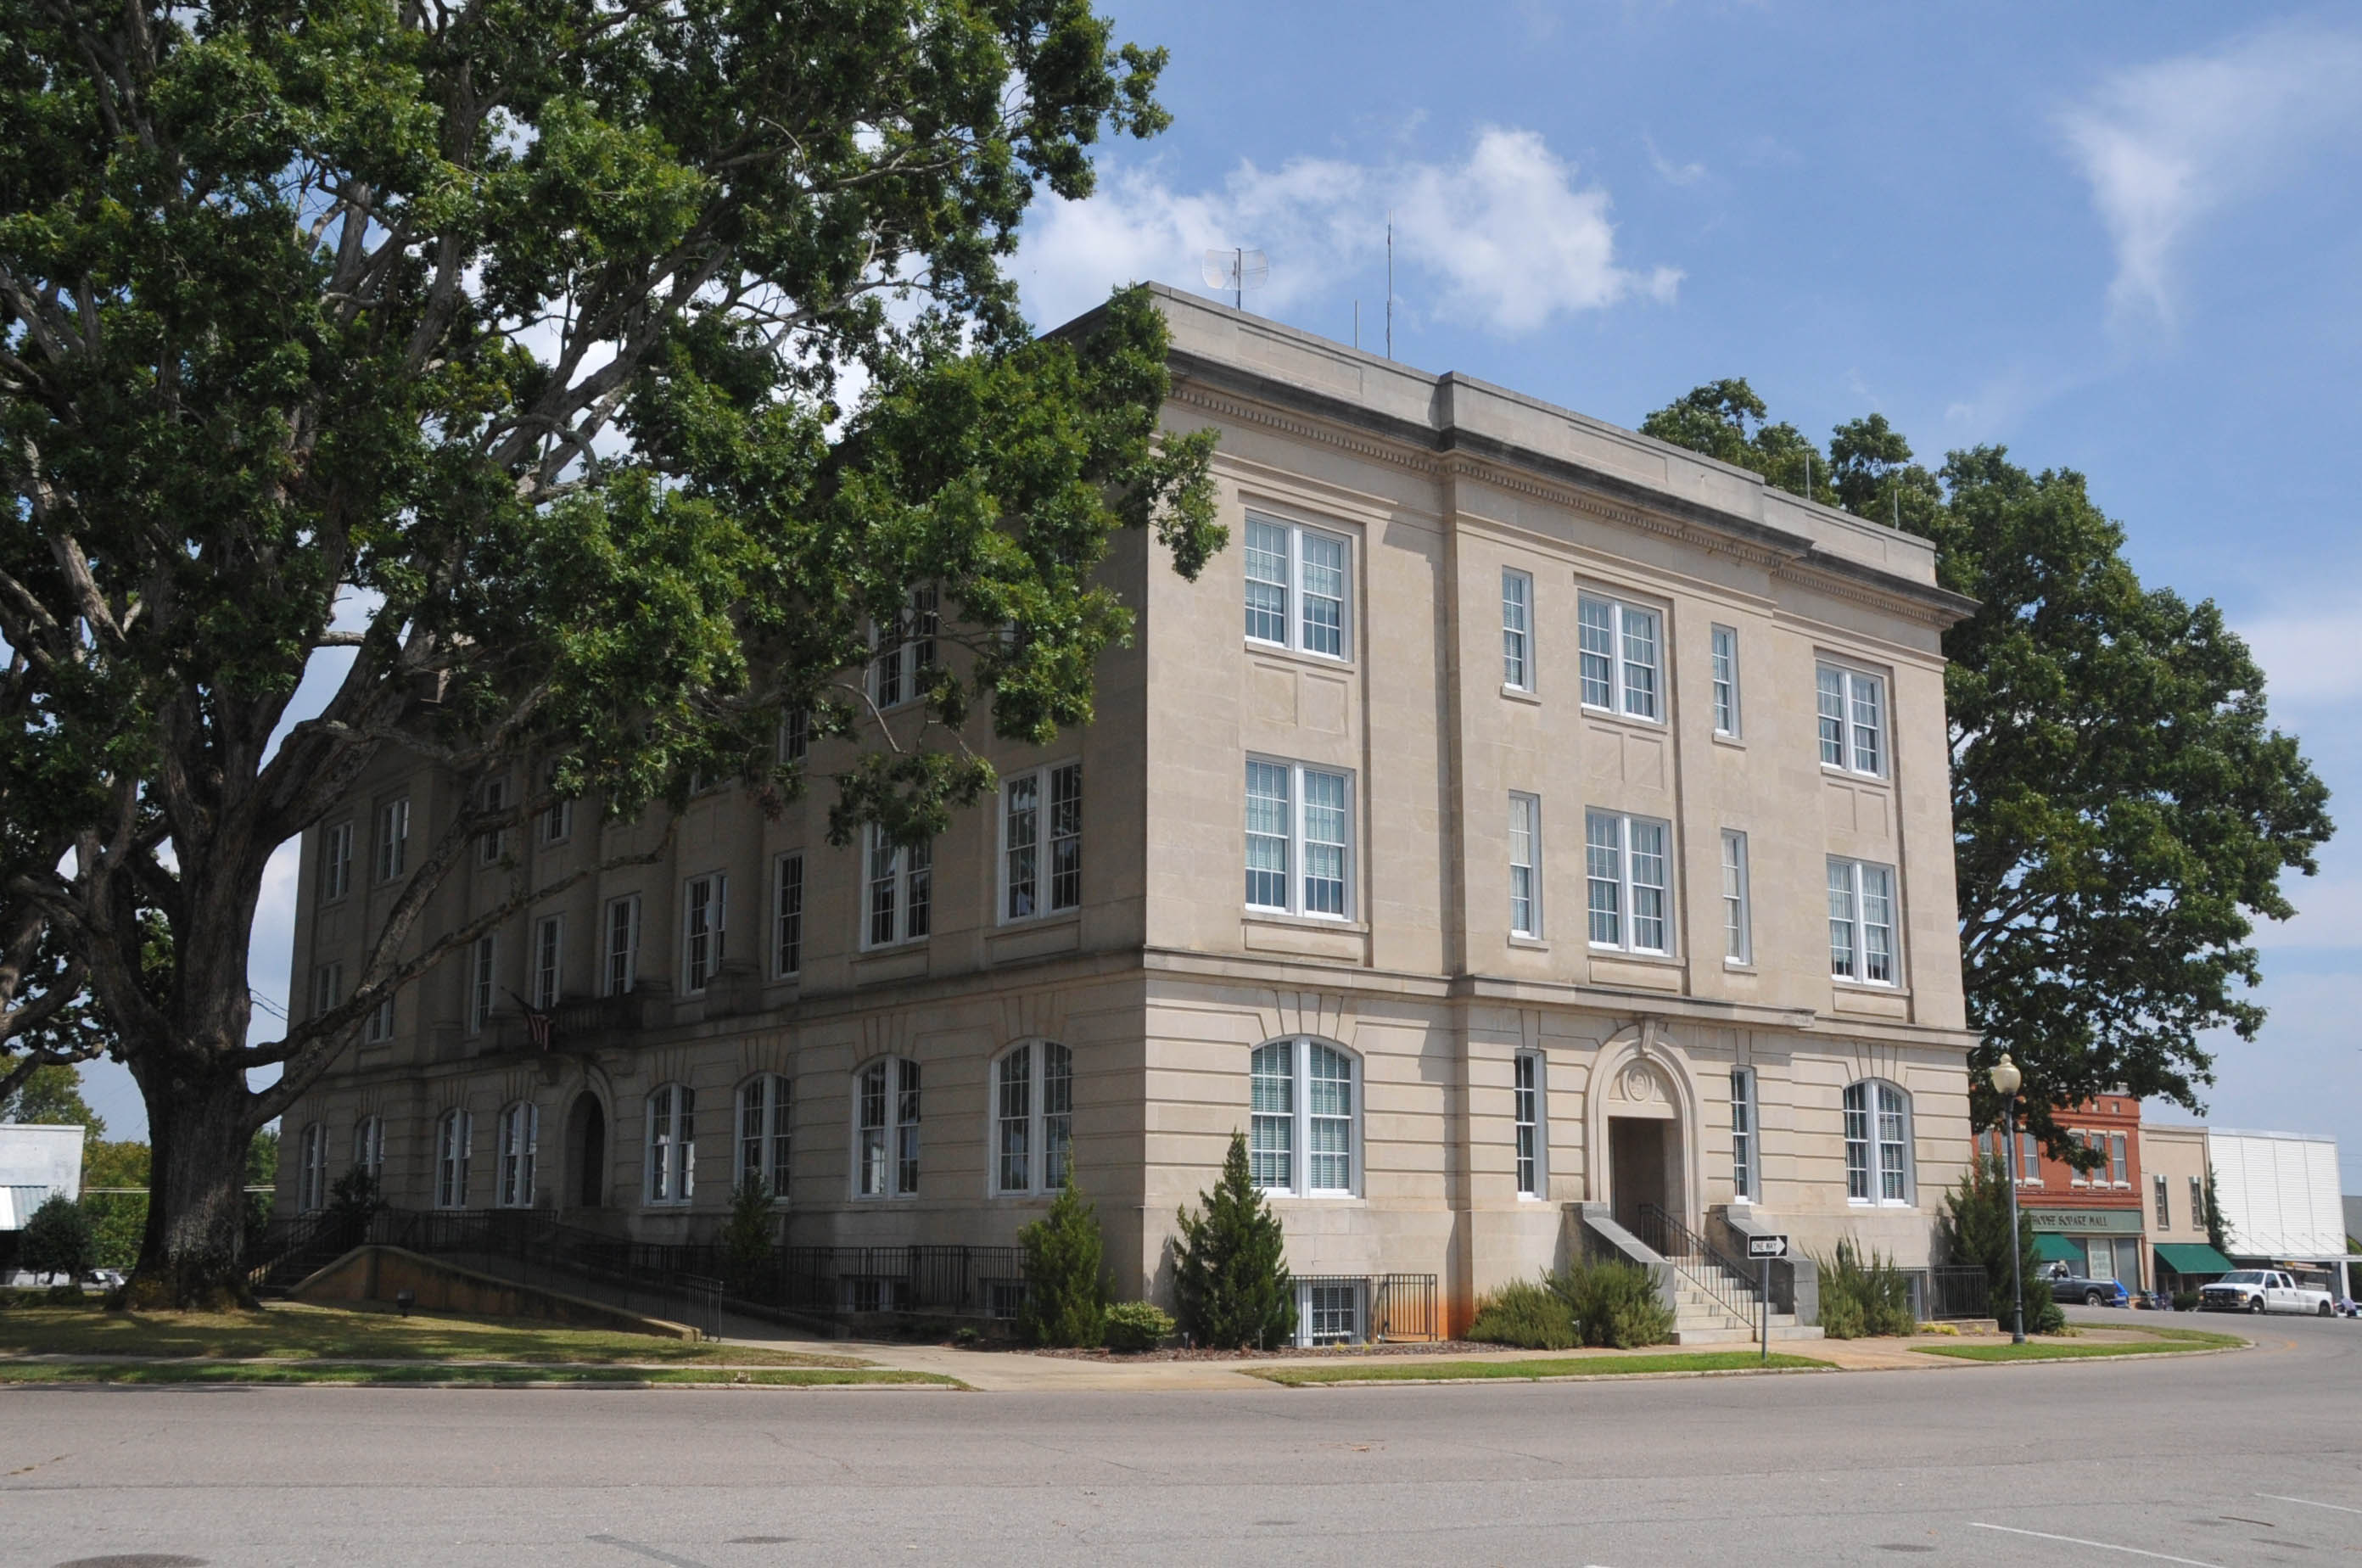 File:MOORE COUNTY COURTHOUSE,balance of moore county